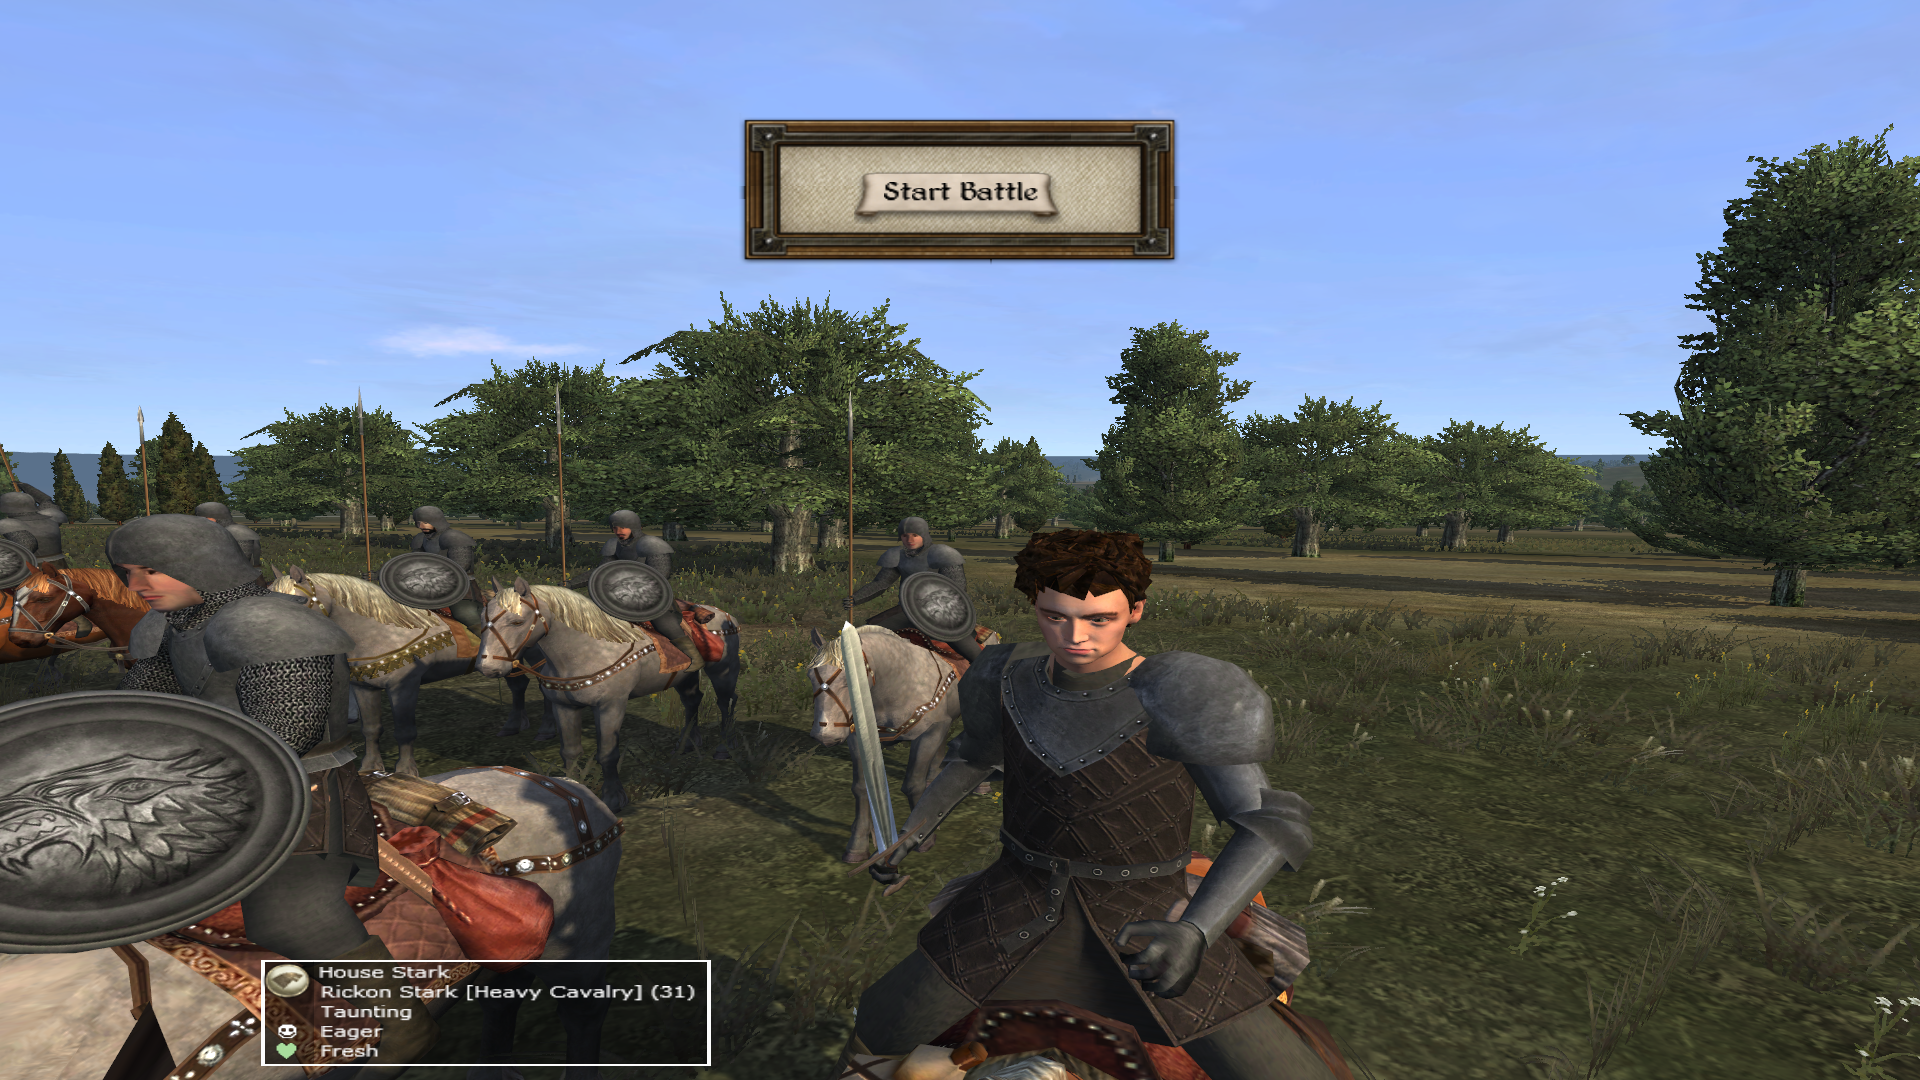 New Rickon Stark hero has been added to the mod.